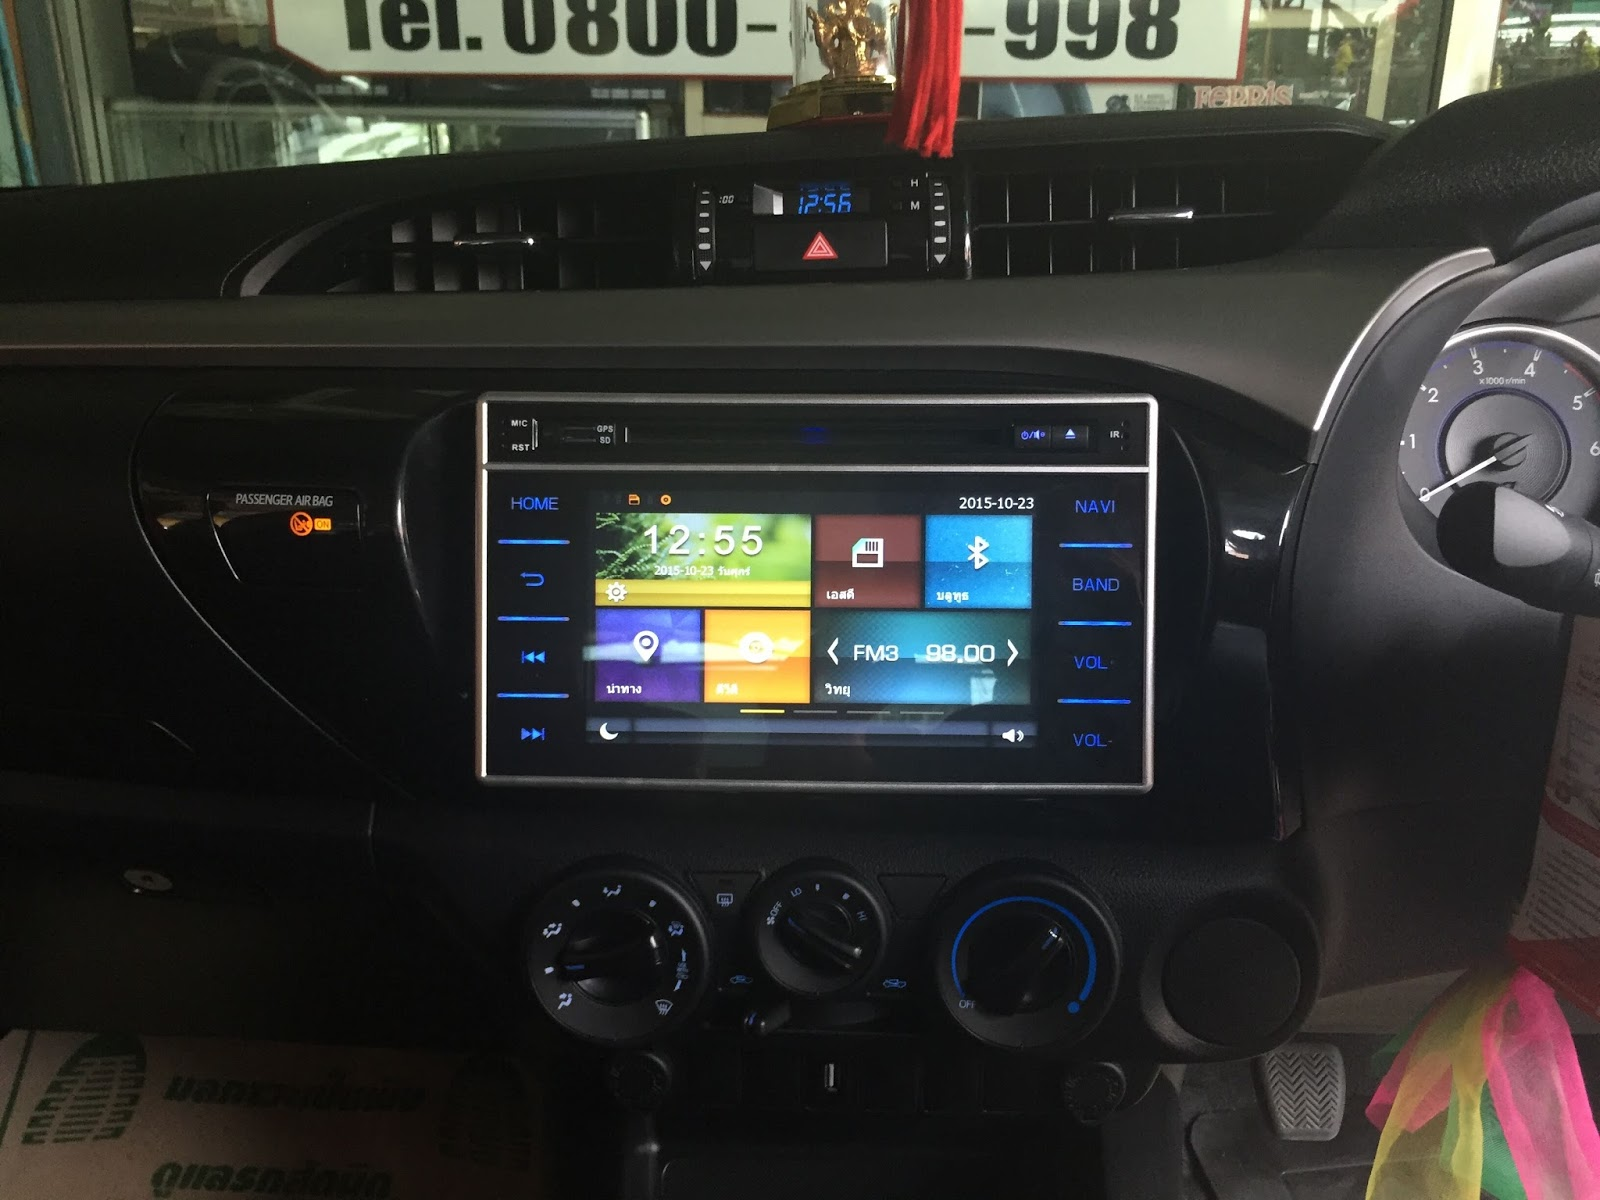 Toyota Hilux Revo 2015 2016 Oem Car Dvd Player With Gps Navigation Wiring Audio Monitor Its Design Well Compatible And Seamless Match Factory Installed By Plug No Need Cut Any Wires